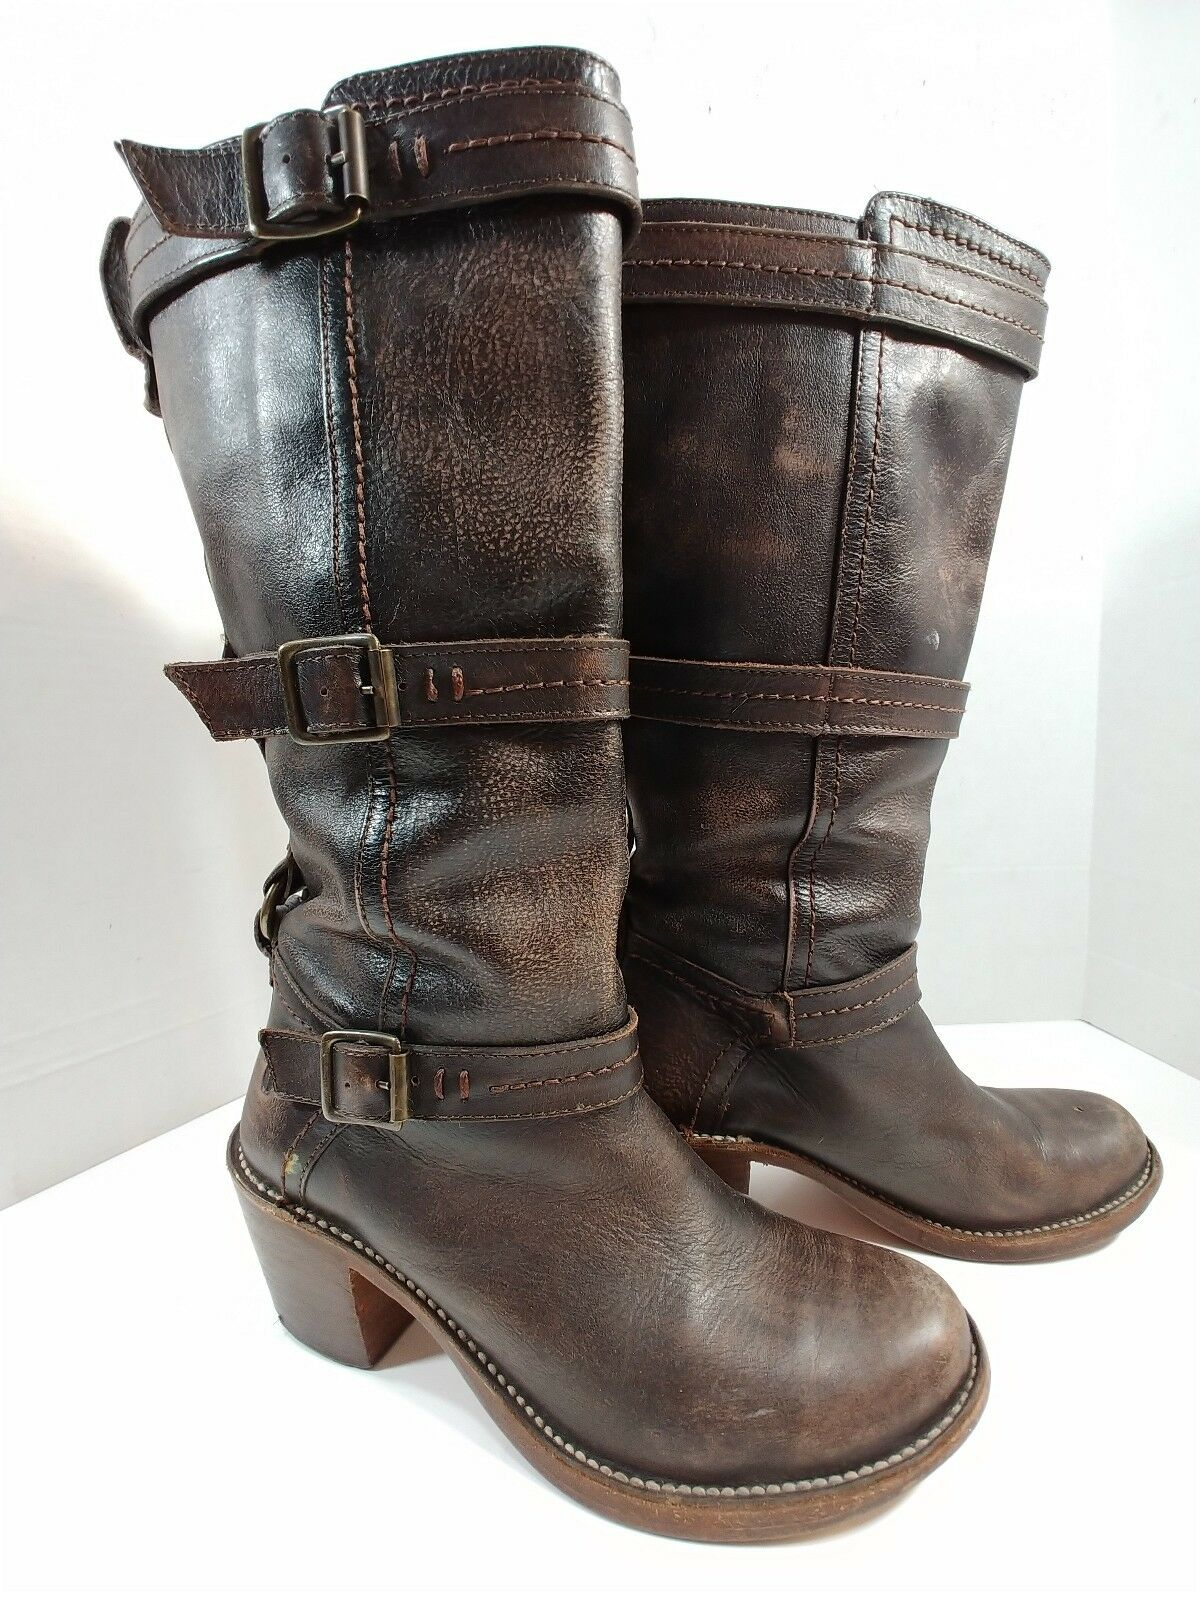 caldo Frye Marrone Distressed Leather Mid Calf Tall Pull On Buckle Buckle Buckle stivali donna 6.5B  vendita scontata online di factory outlet